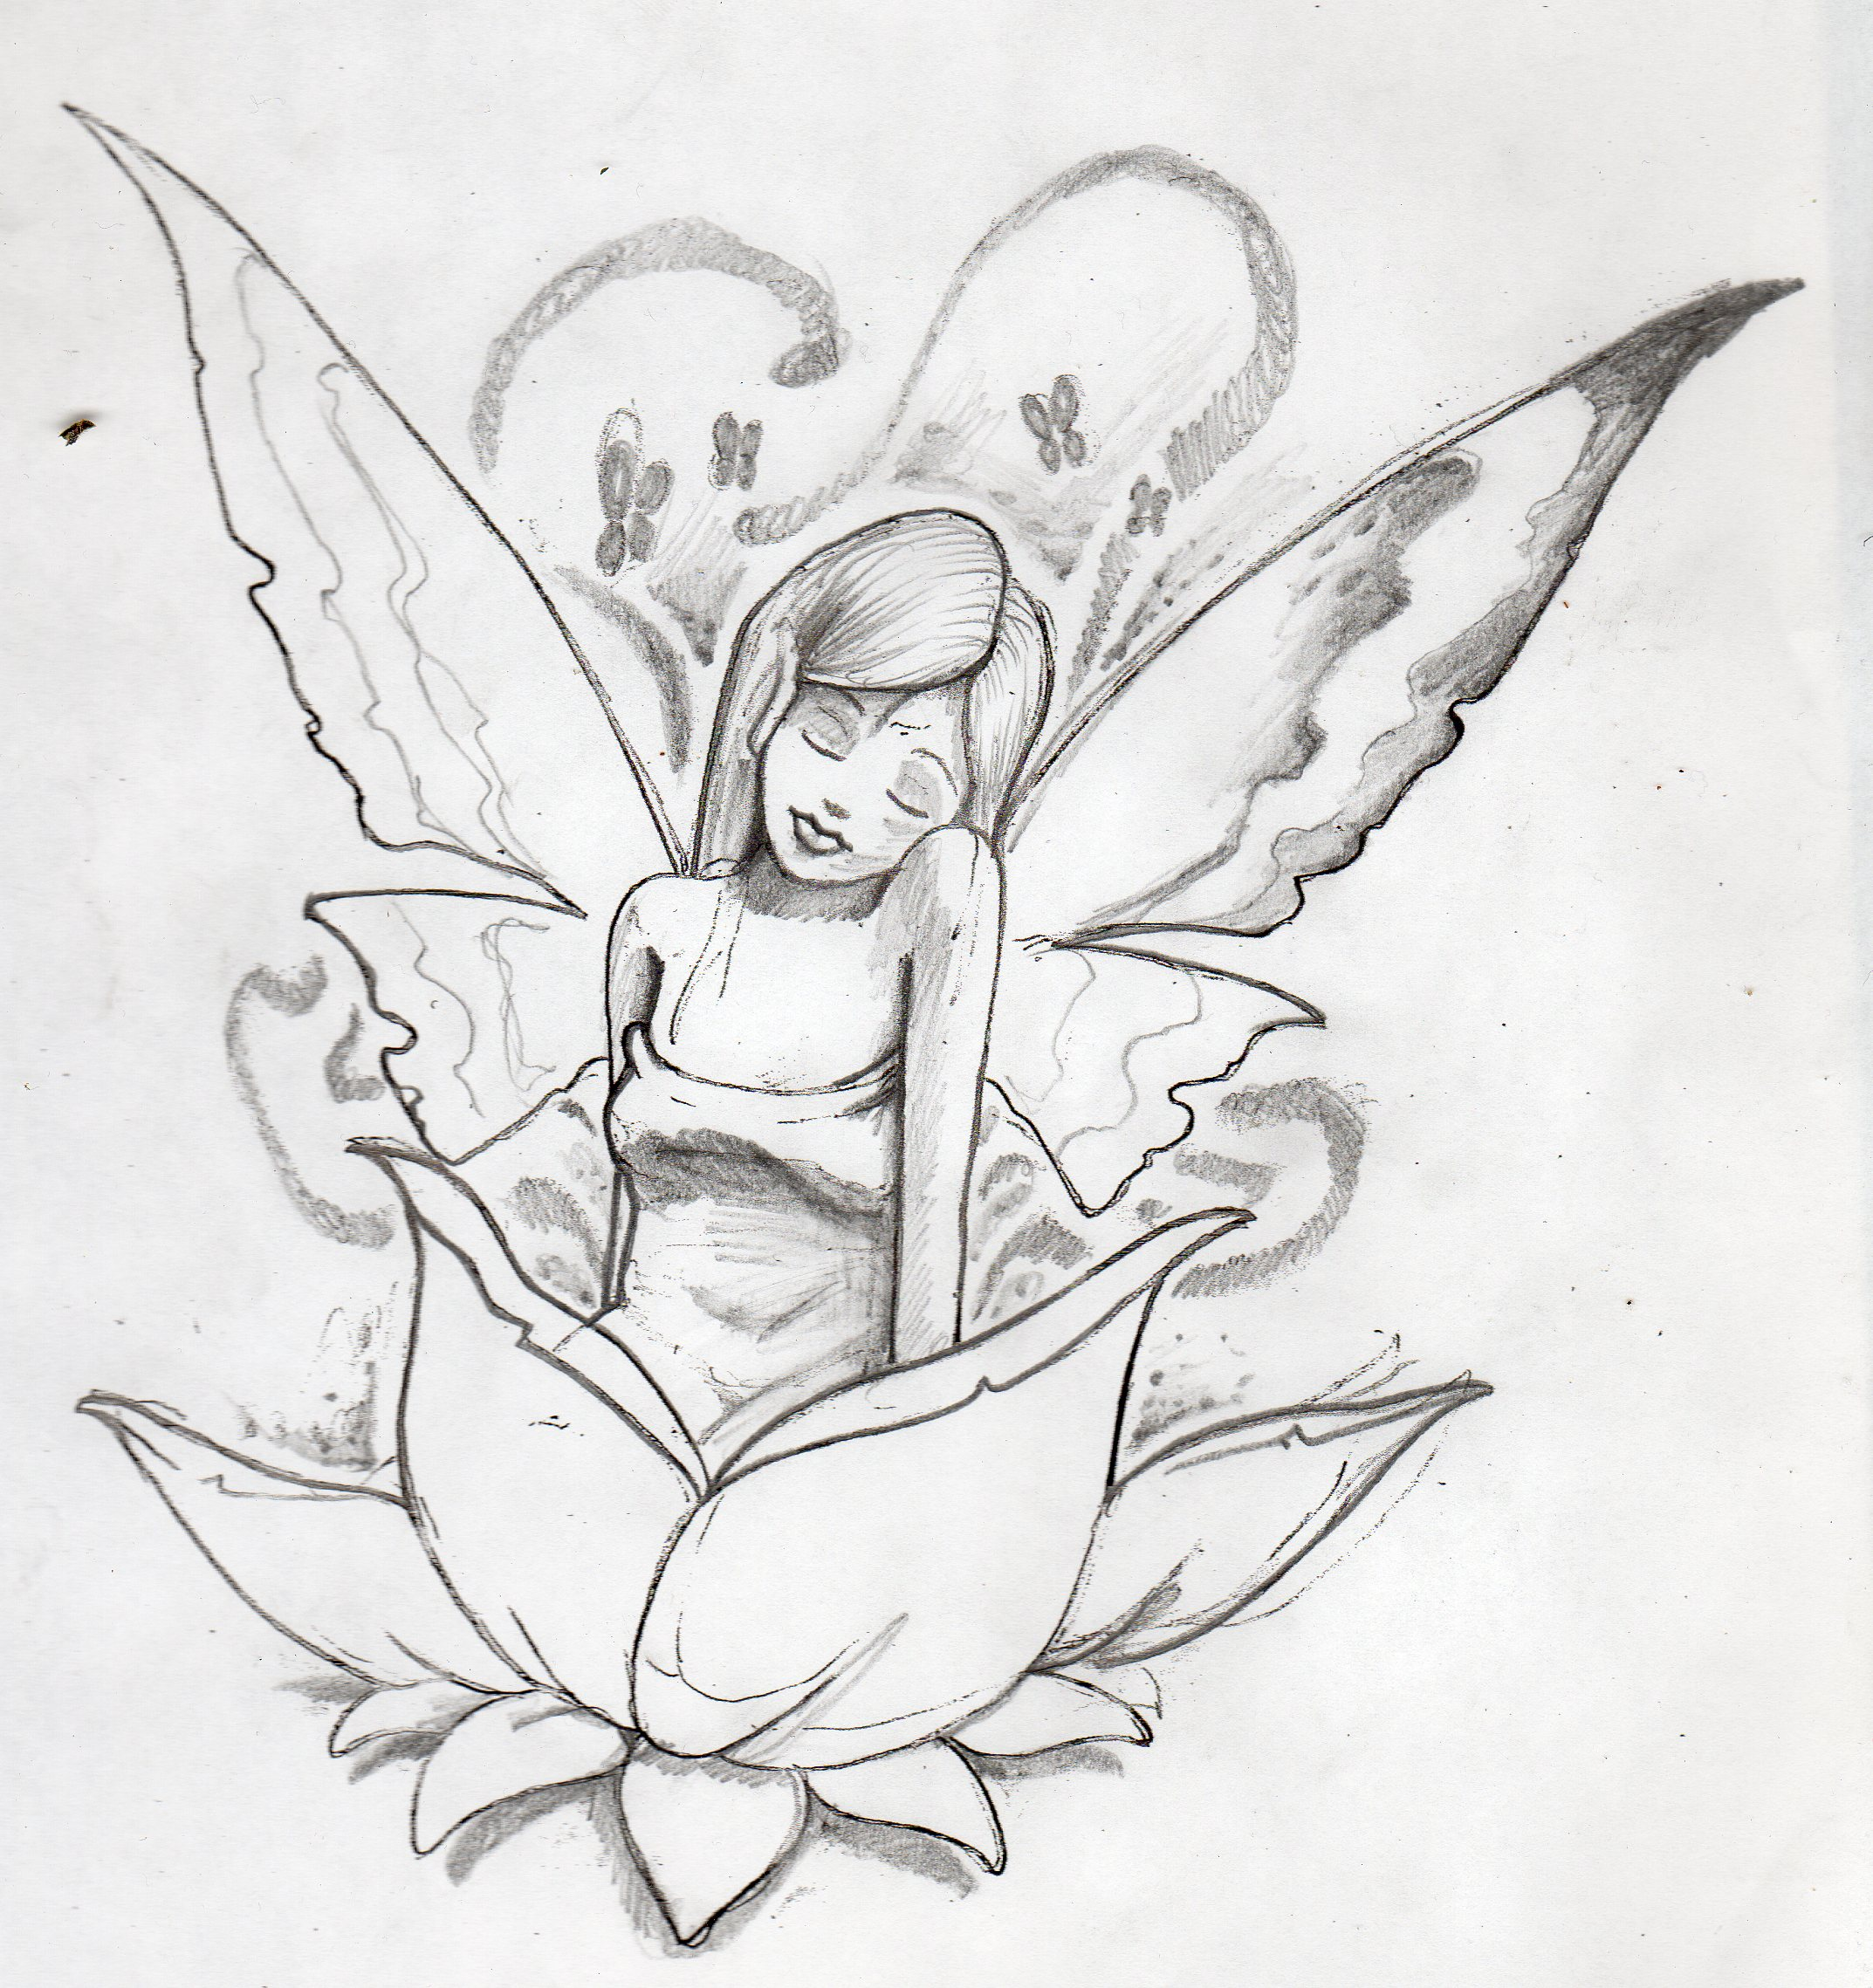 Fairy Sketch 2 by alivetoknow on DeviantArt